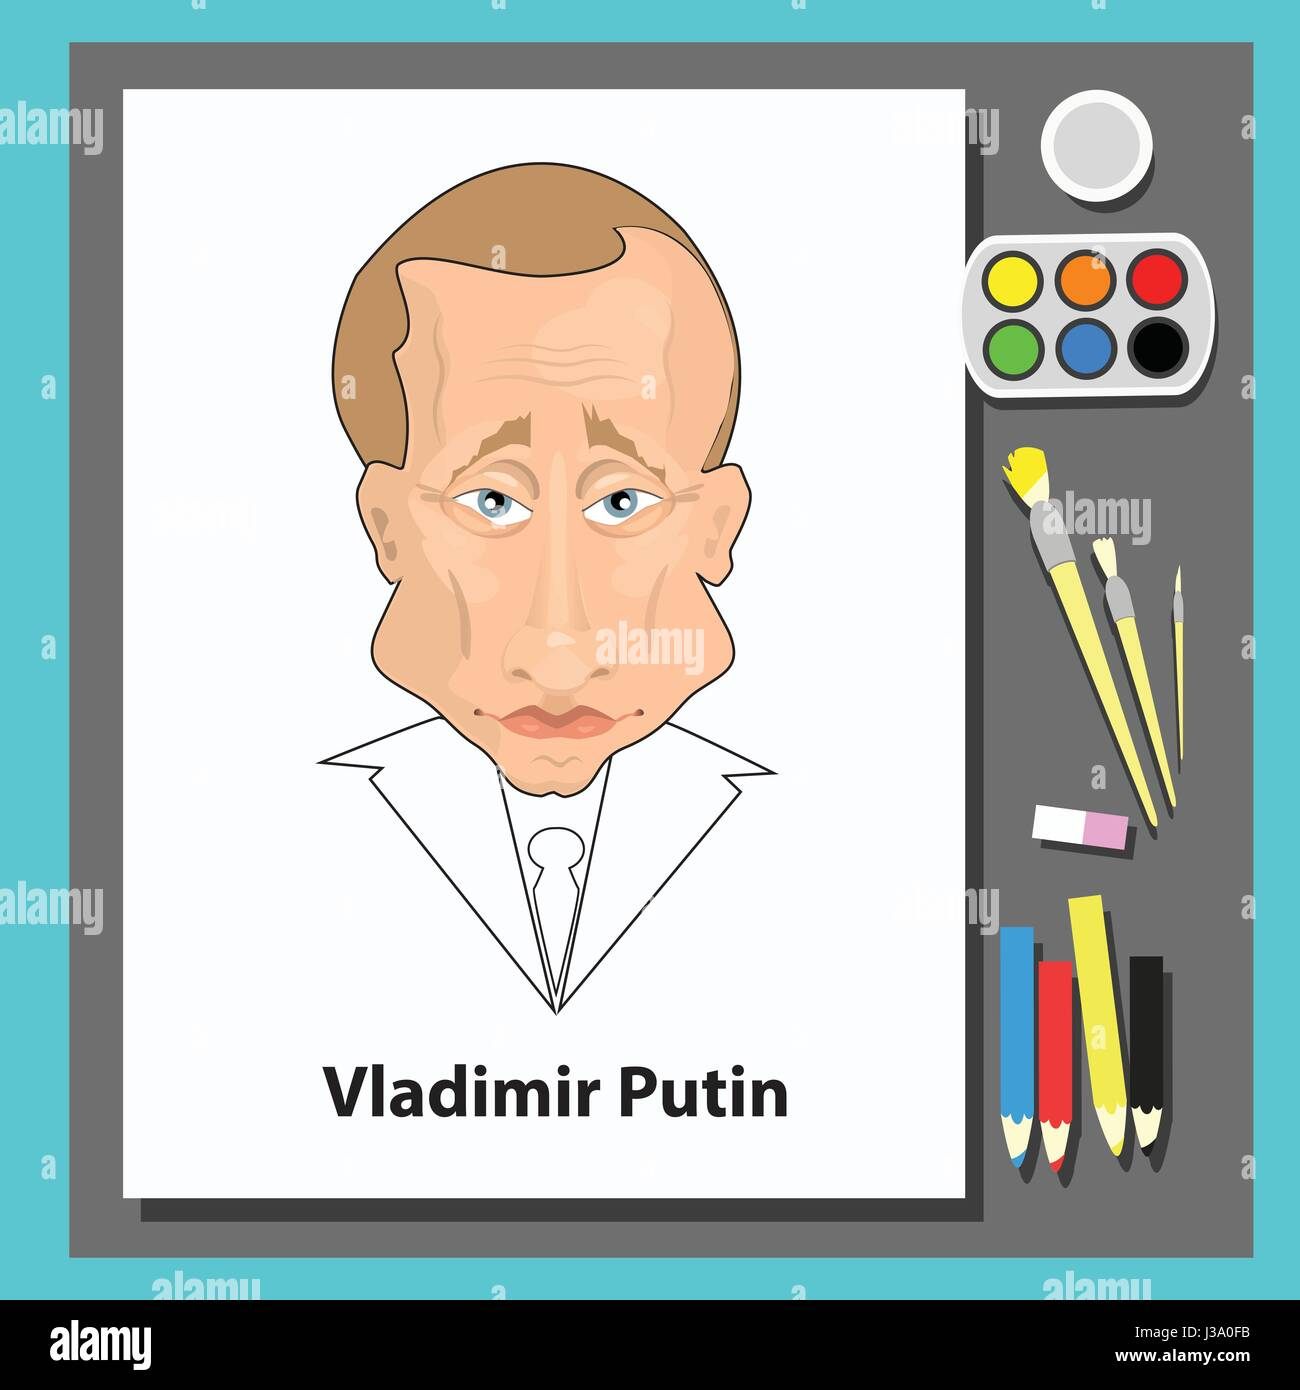 Vladimir Putin is the president of Russia. Illustration for your design. Drawing on paper with paints and brushes. - Stock Image